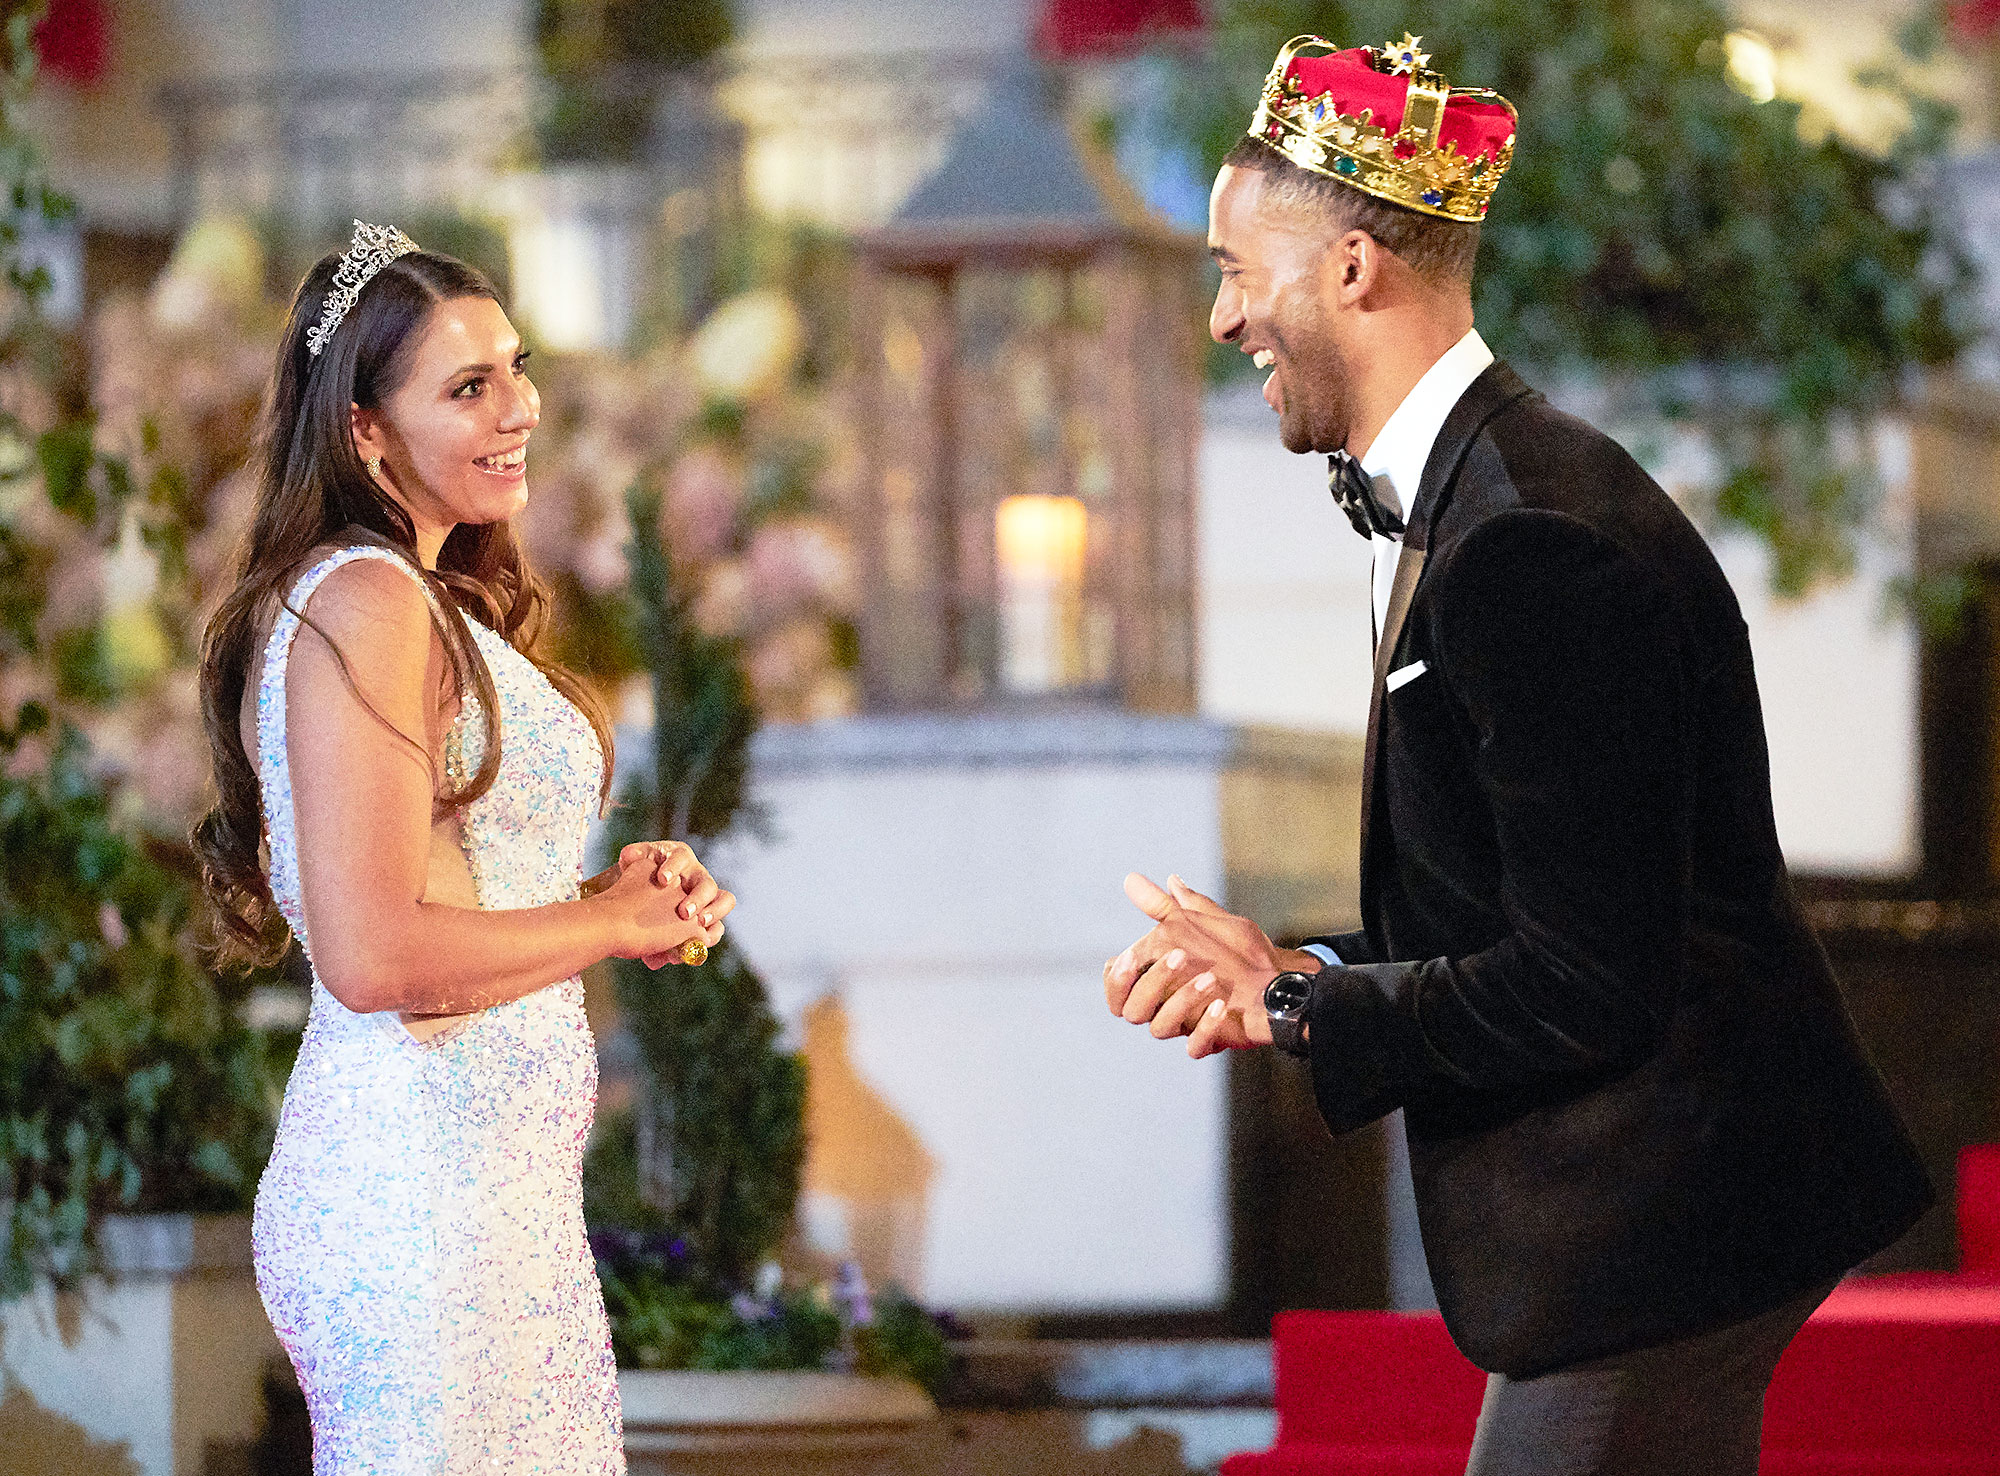 Queen Victoria Larson Insists Shes Not a Bully and Doesnt Have Regrets Watching The Bachelor